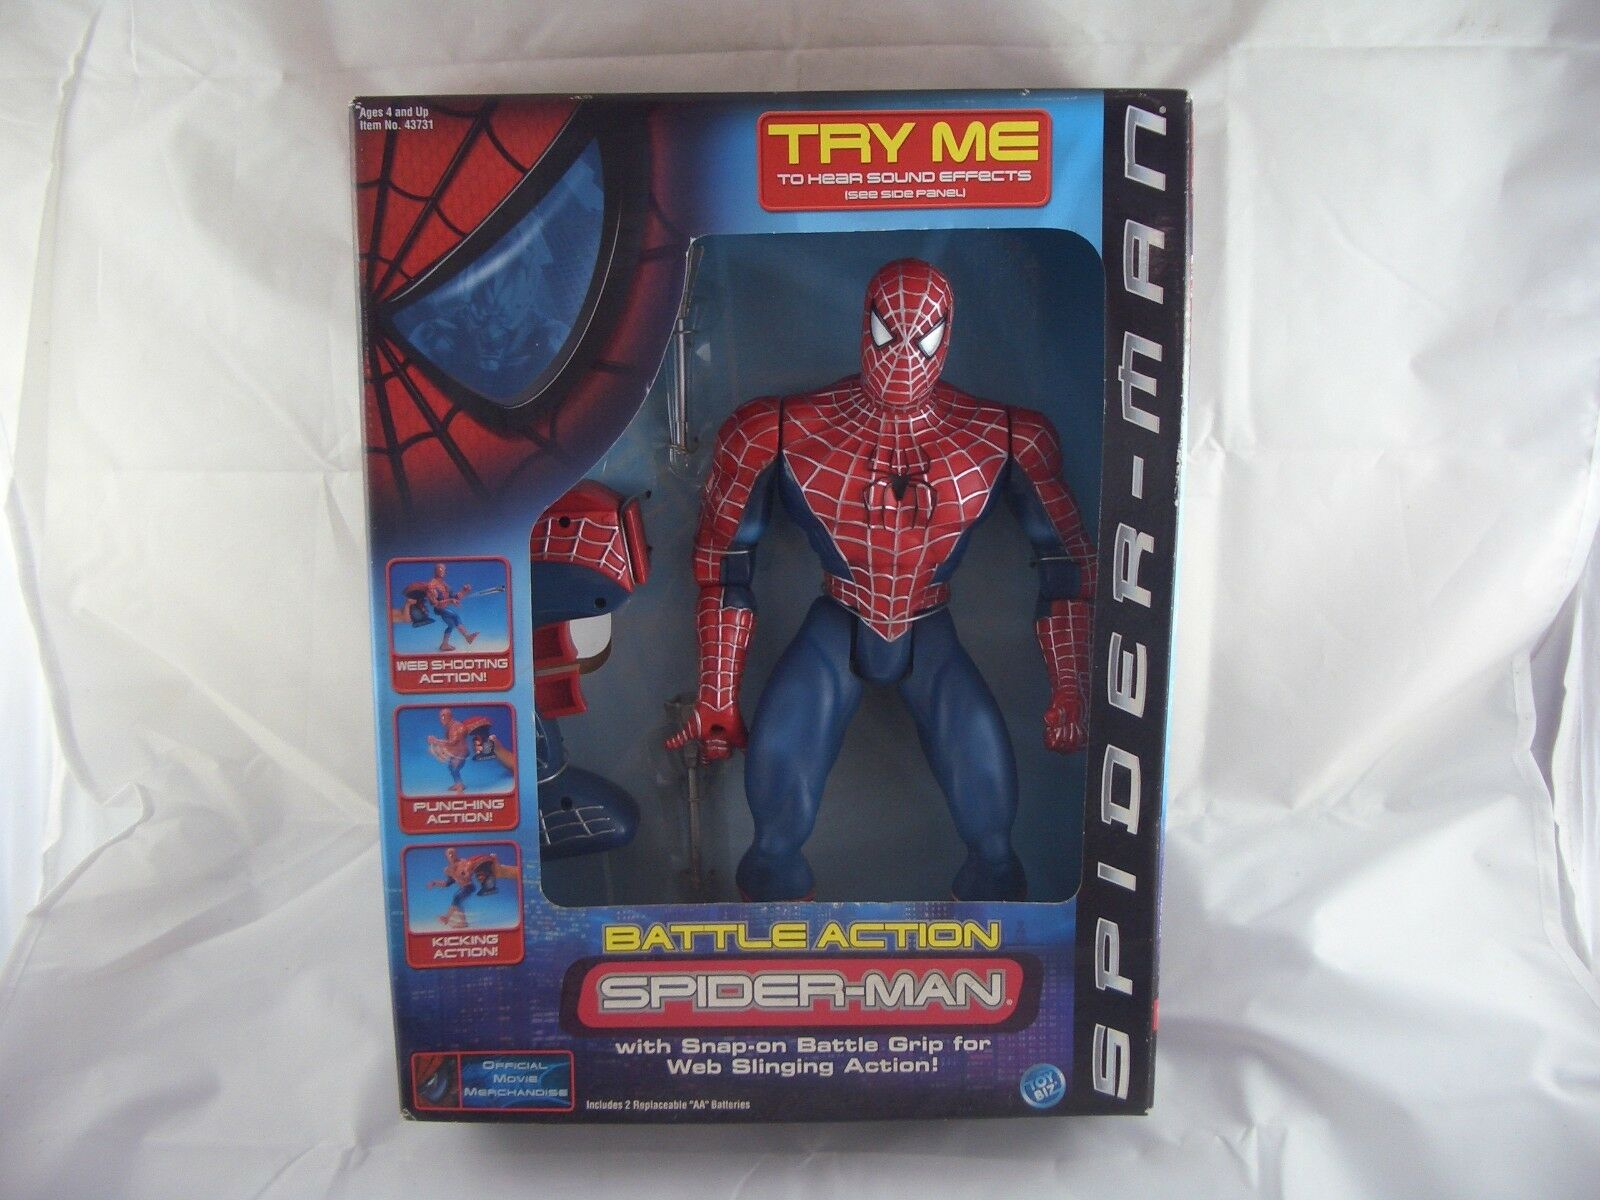 Marvel Toy Biz Spider-Man  Action Figure 13  Tall With Battle Grip  les dernières marques en ligne